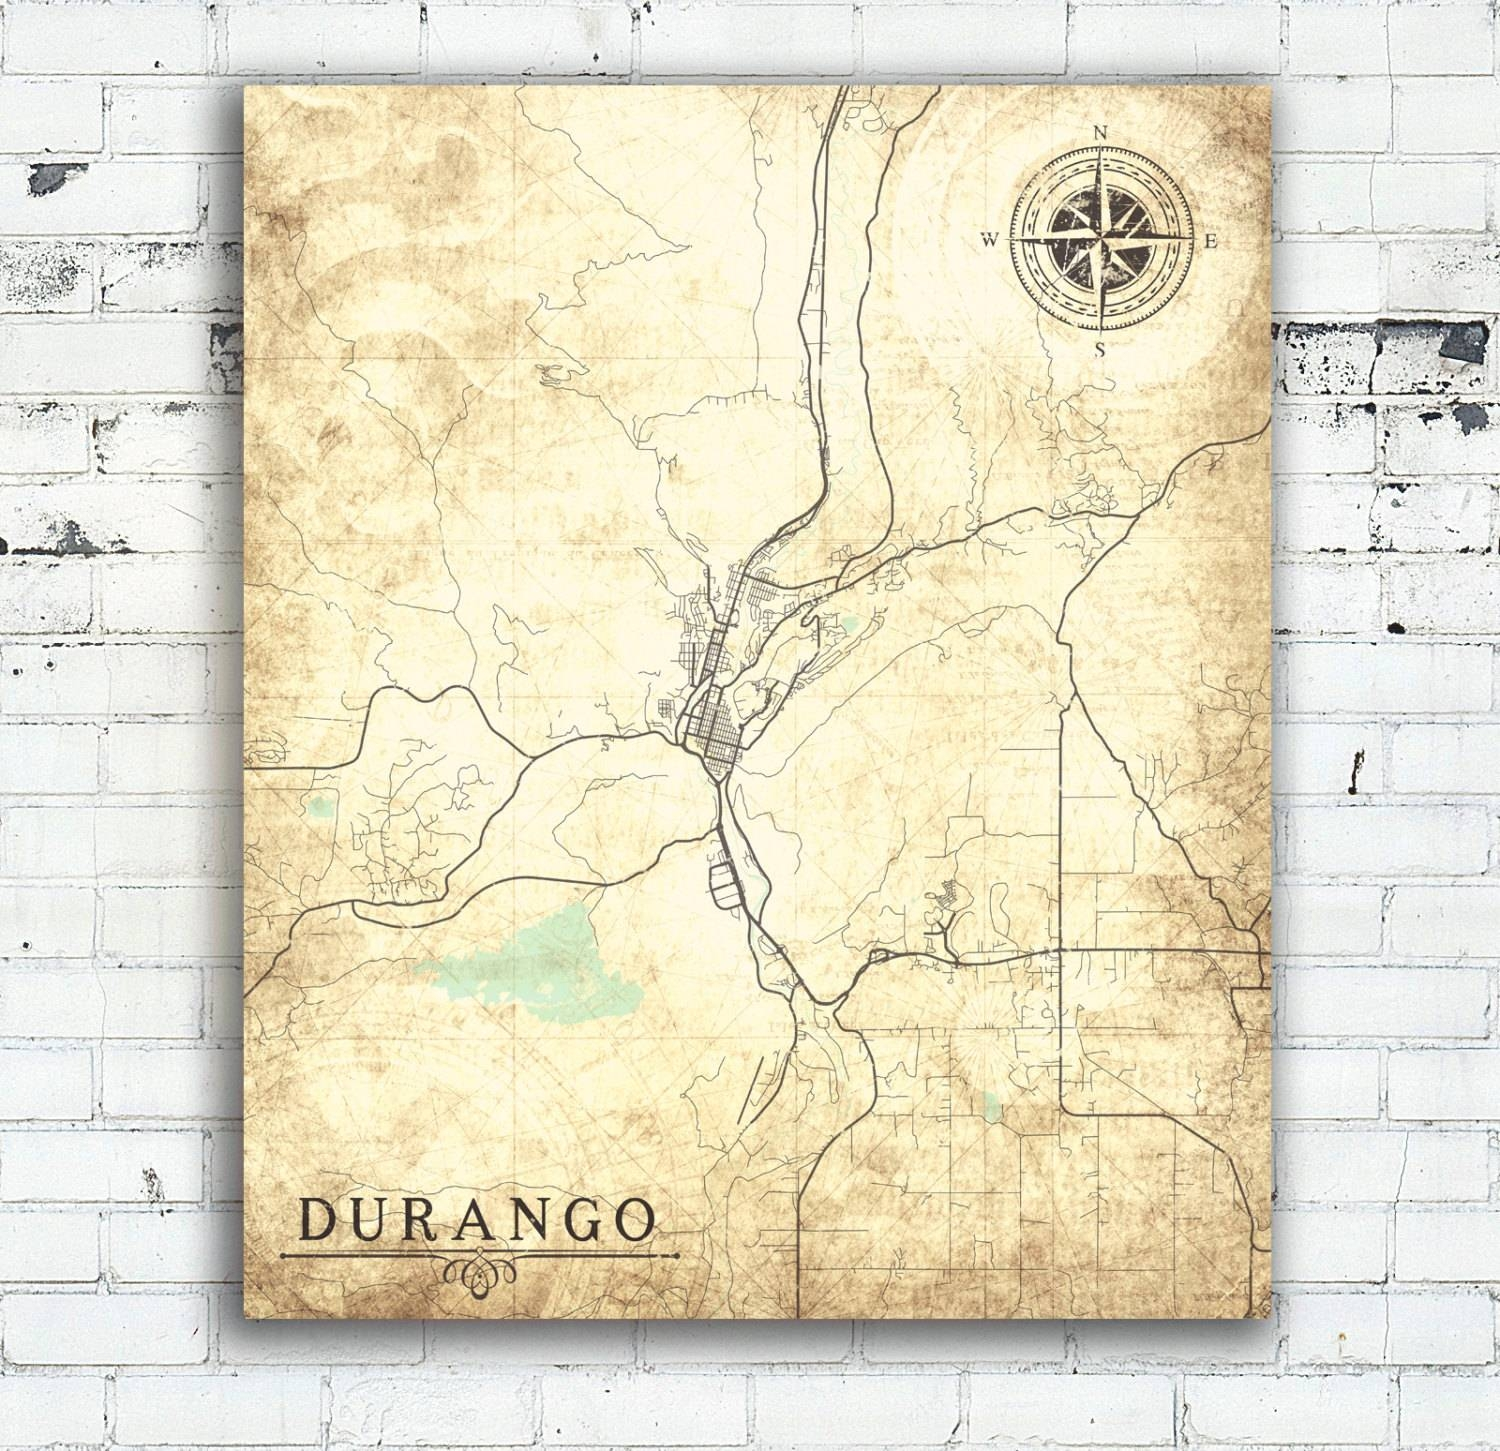 Durango Co Colorado Vintage Map Durango Vintage City Wall Art In Recent Florida Map Wall Art (View 2 of 20)